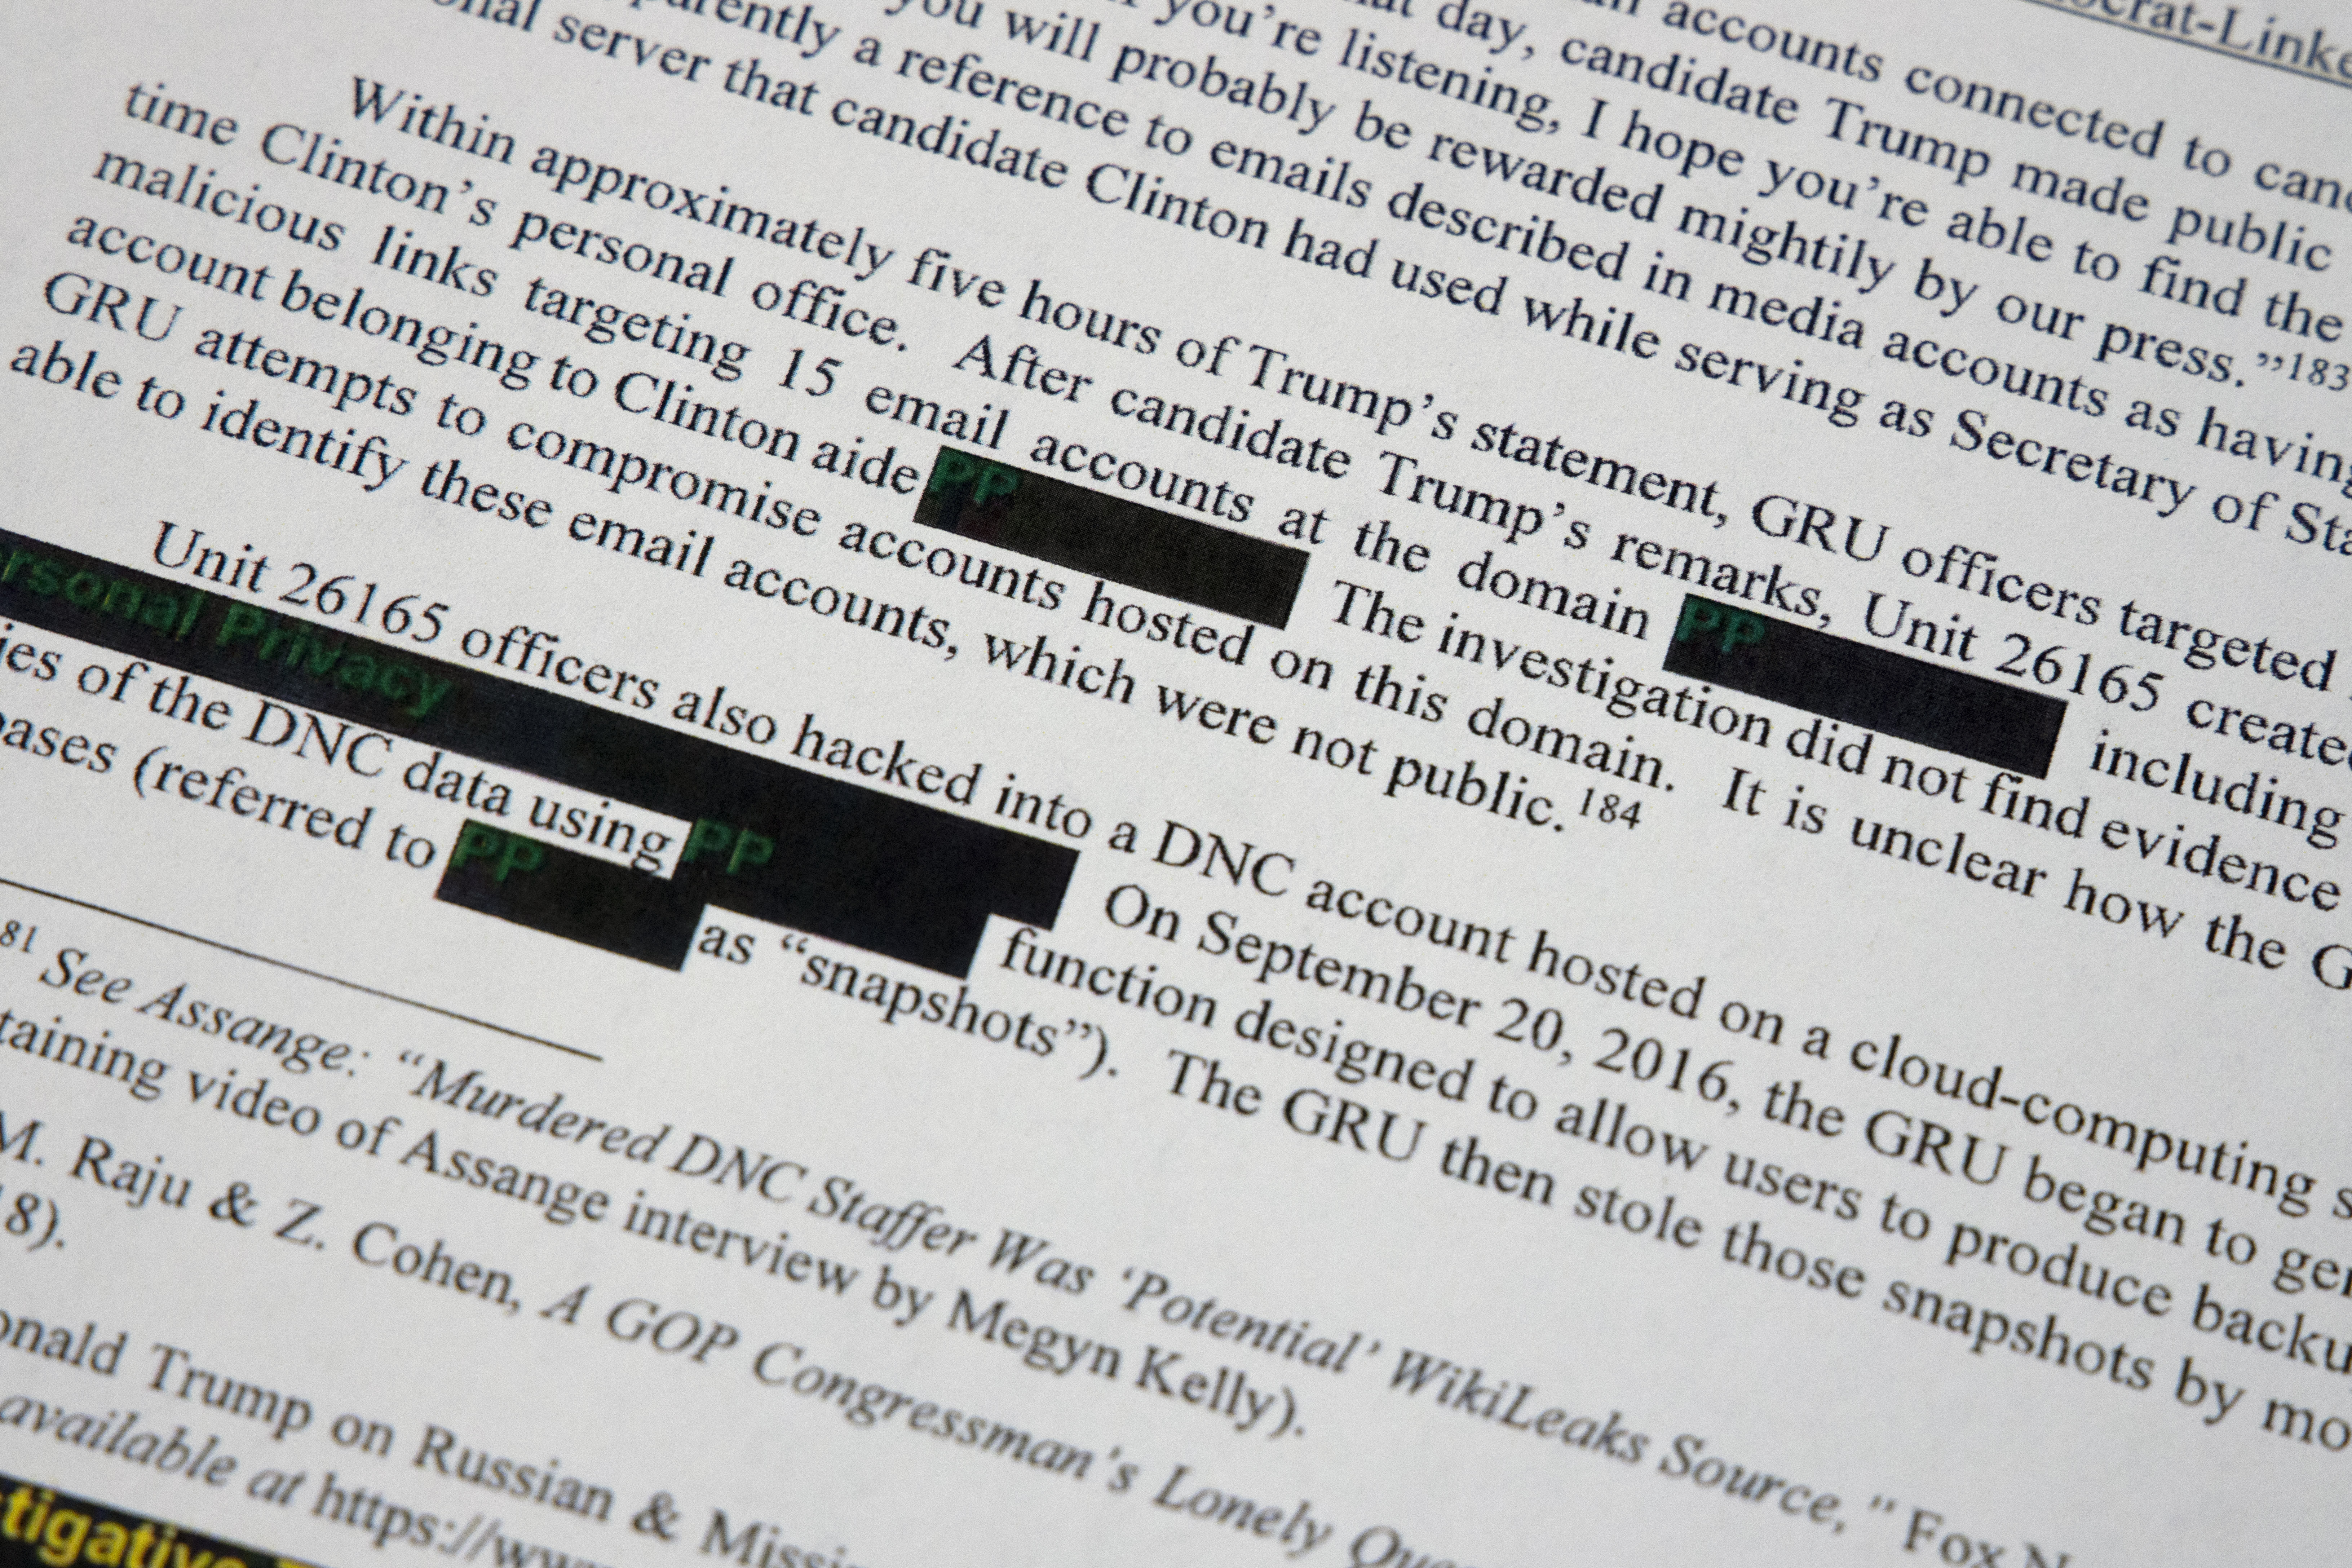 The Mueller report reads like an impeachment referral - The